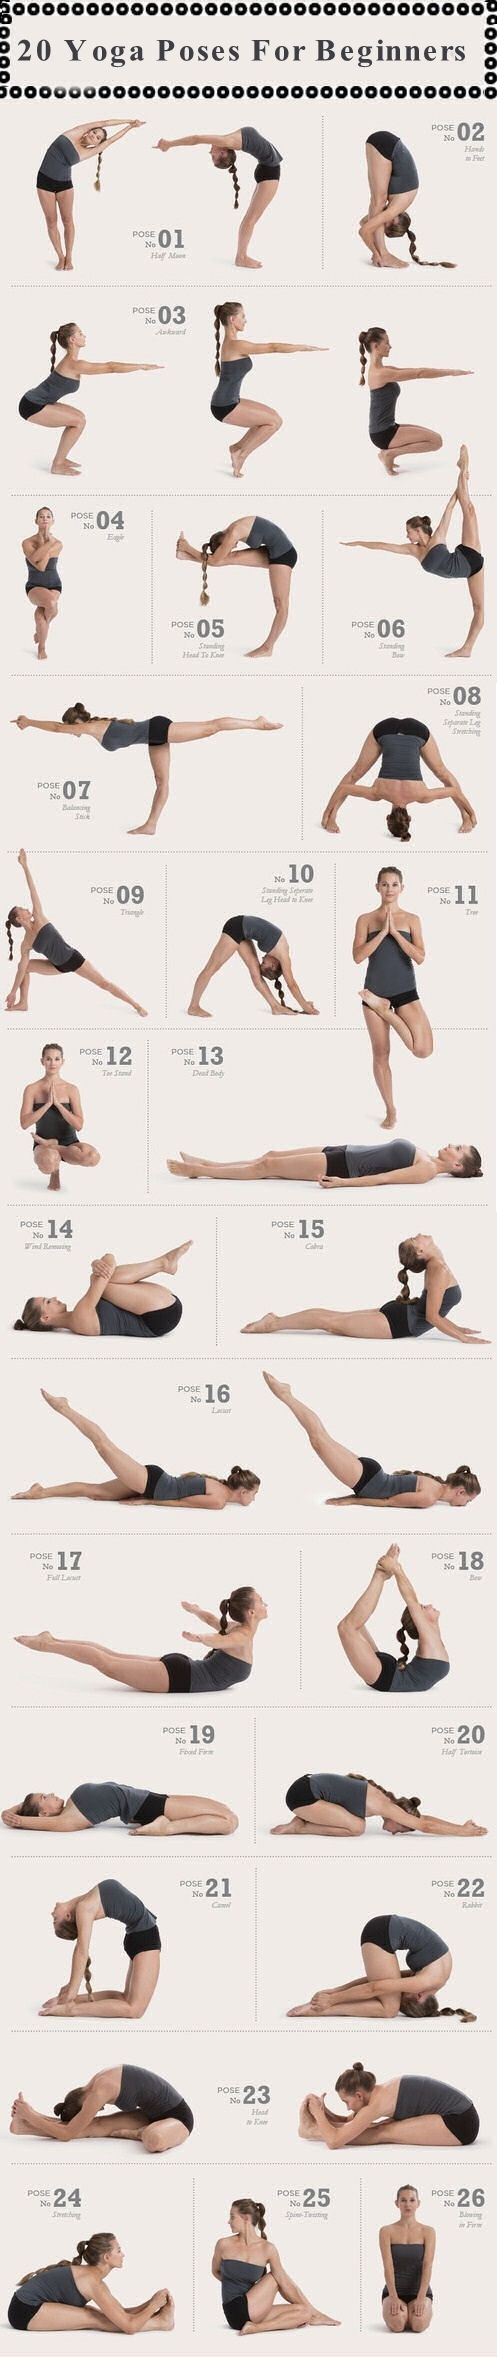 26 Yoga Poses For Beginners in Pictures